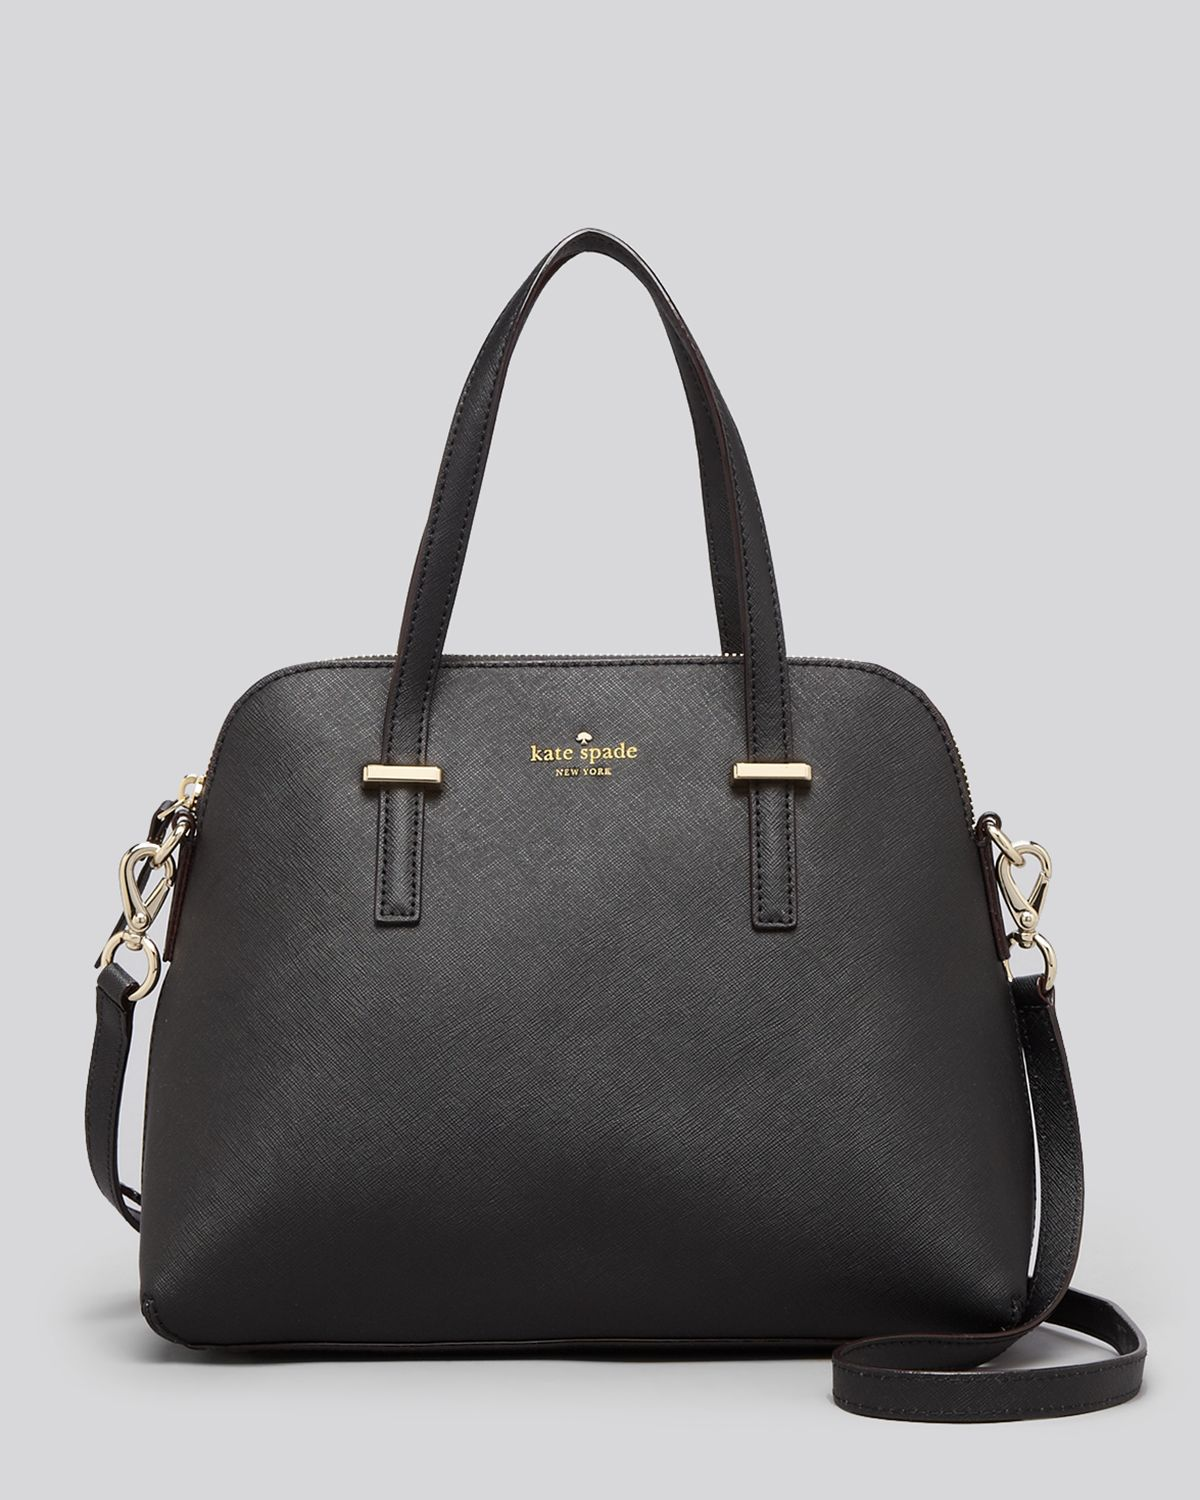 Kate spade new york Cedar Street Maise Satchel in Black | Lyst